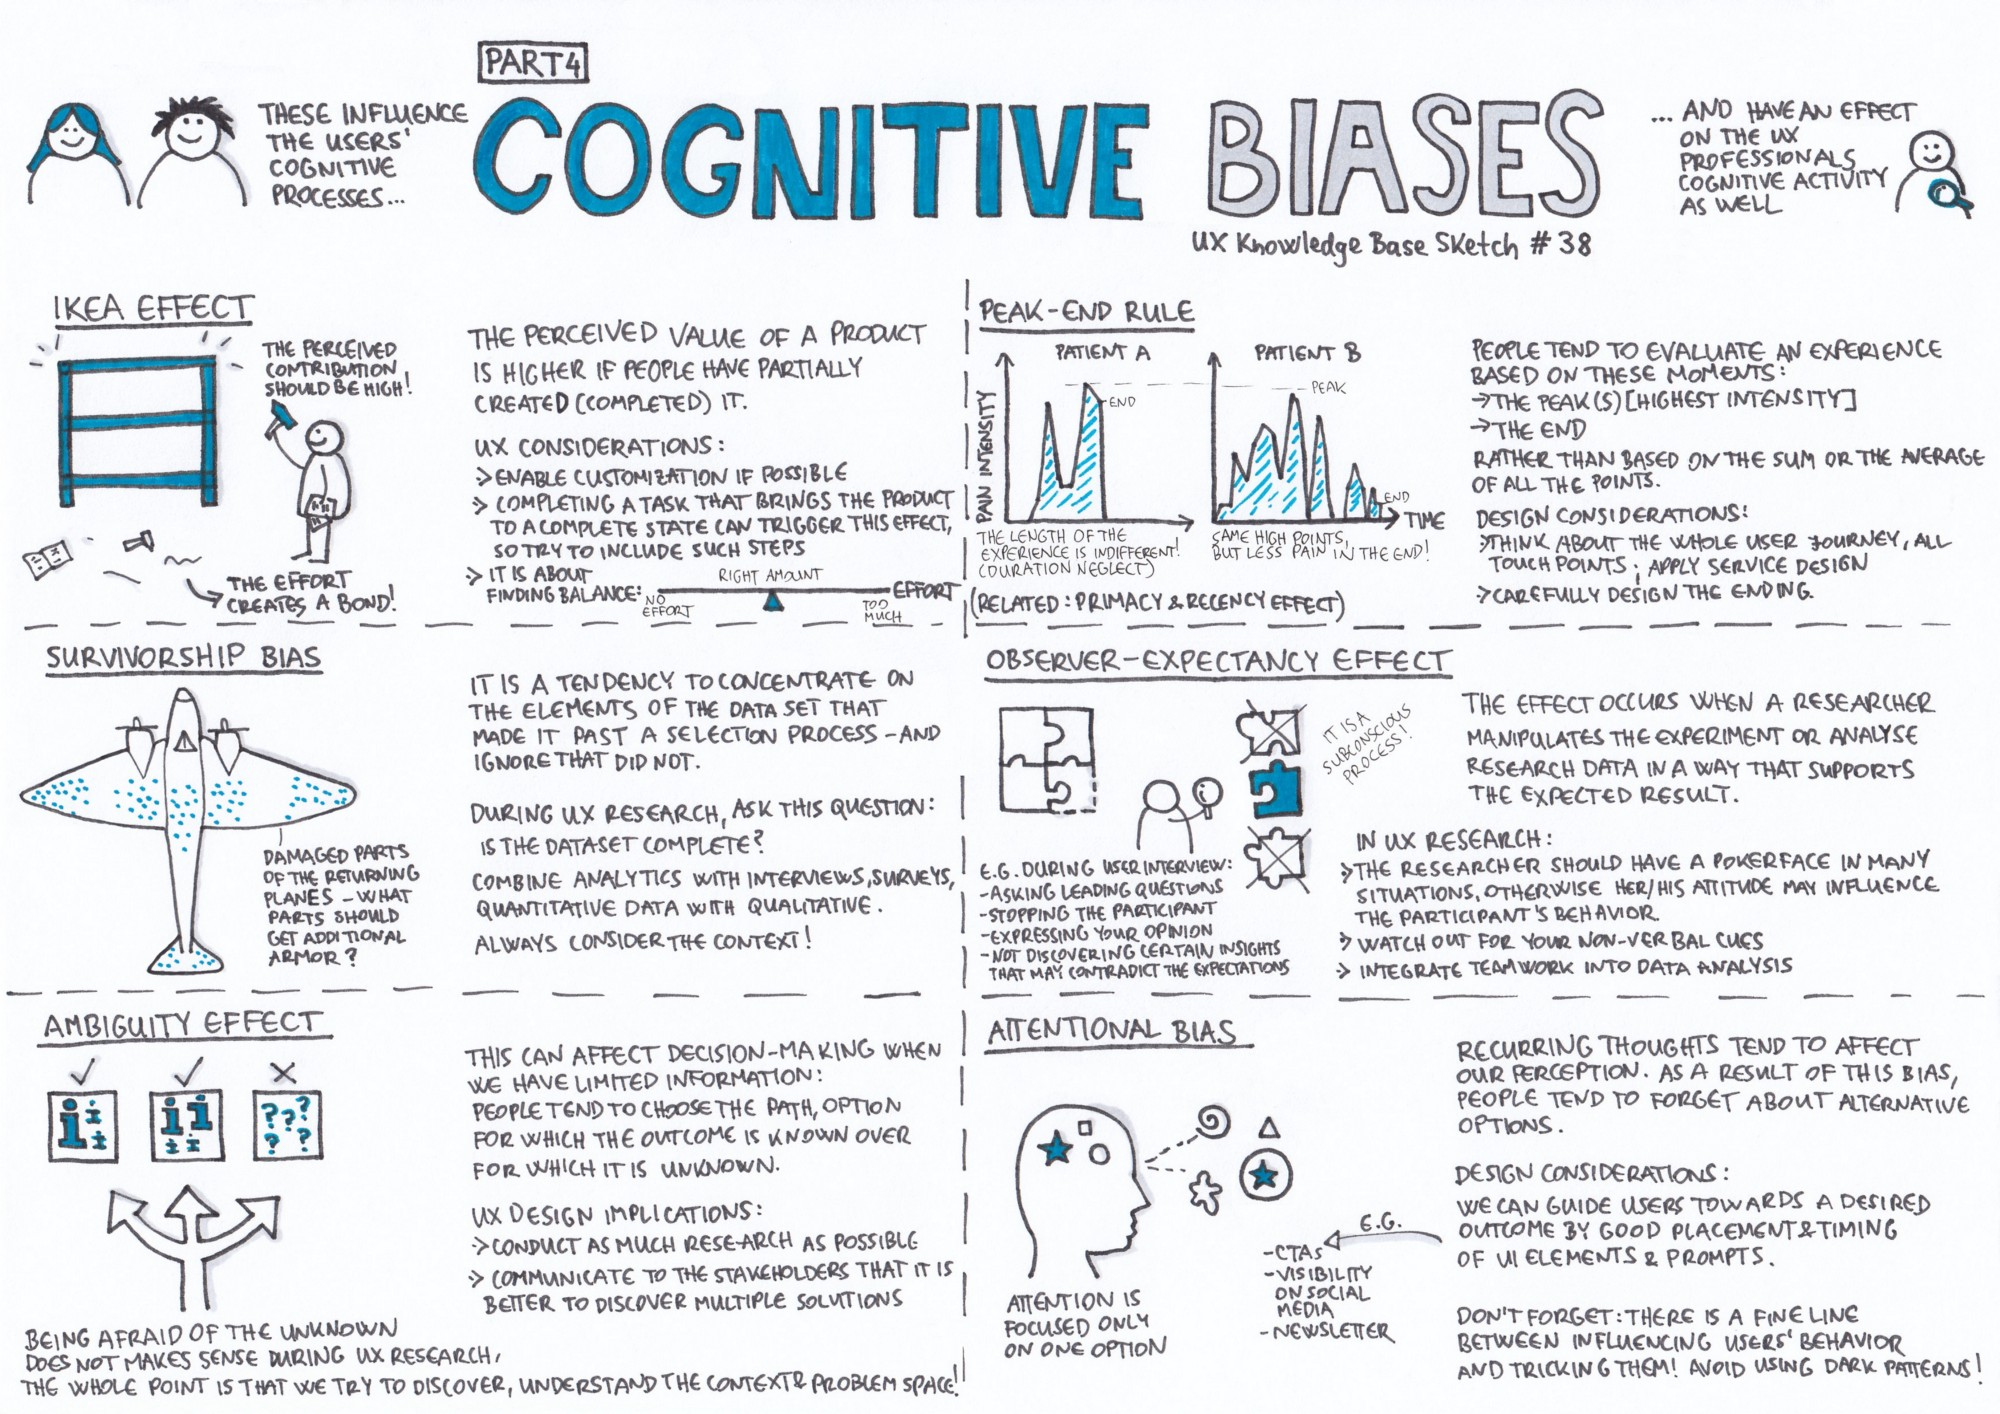 Cognitive Bias Part 4 Ux Knowledge Base Sketch